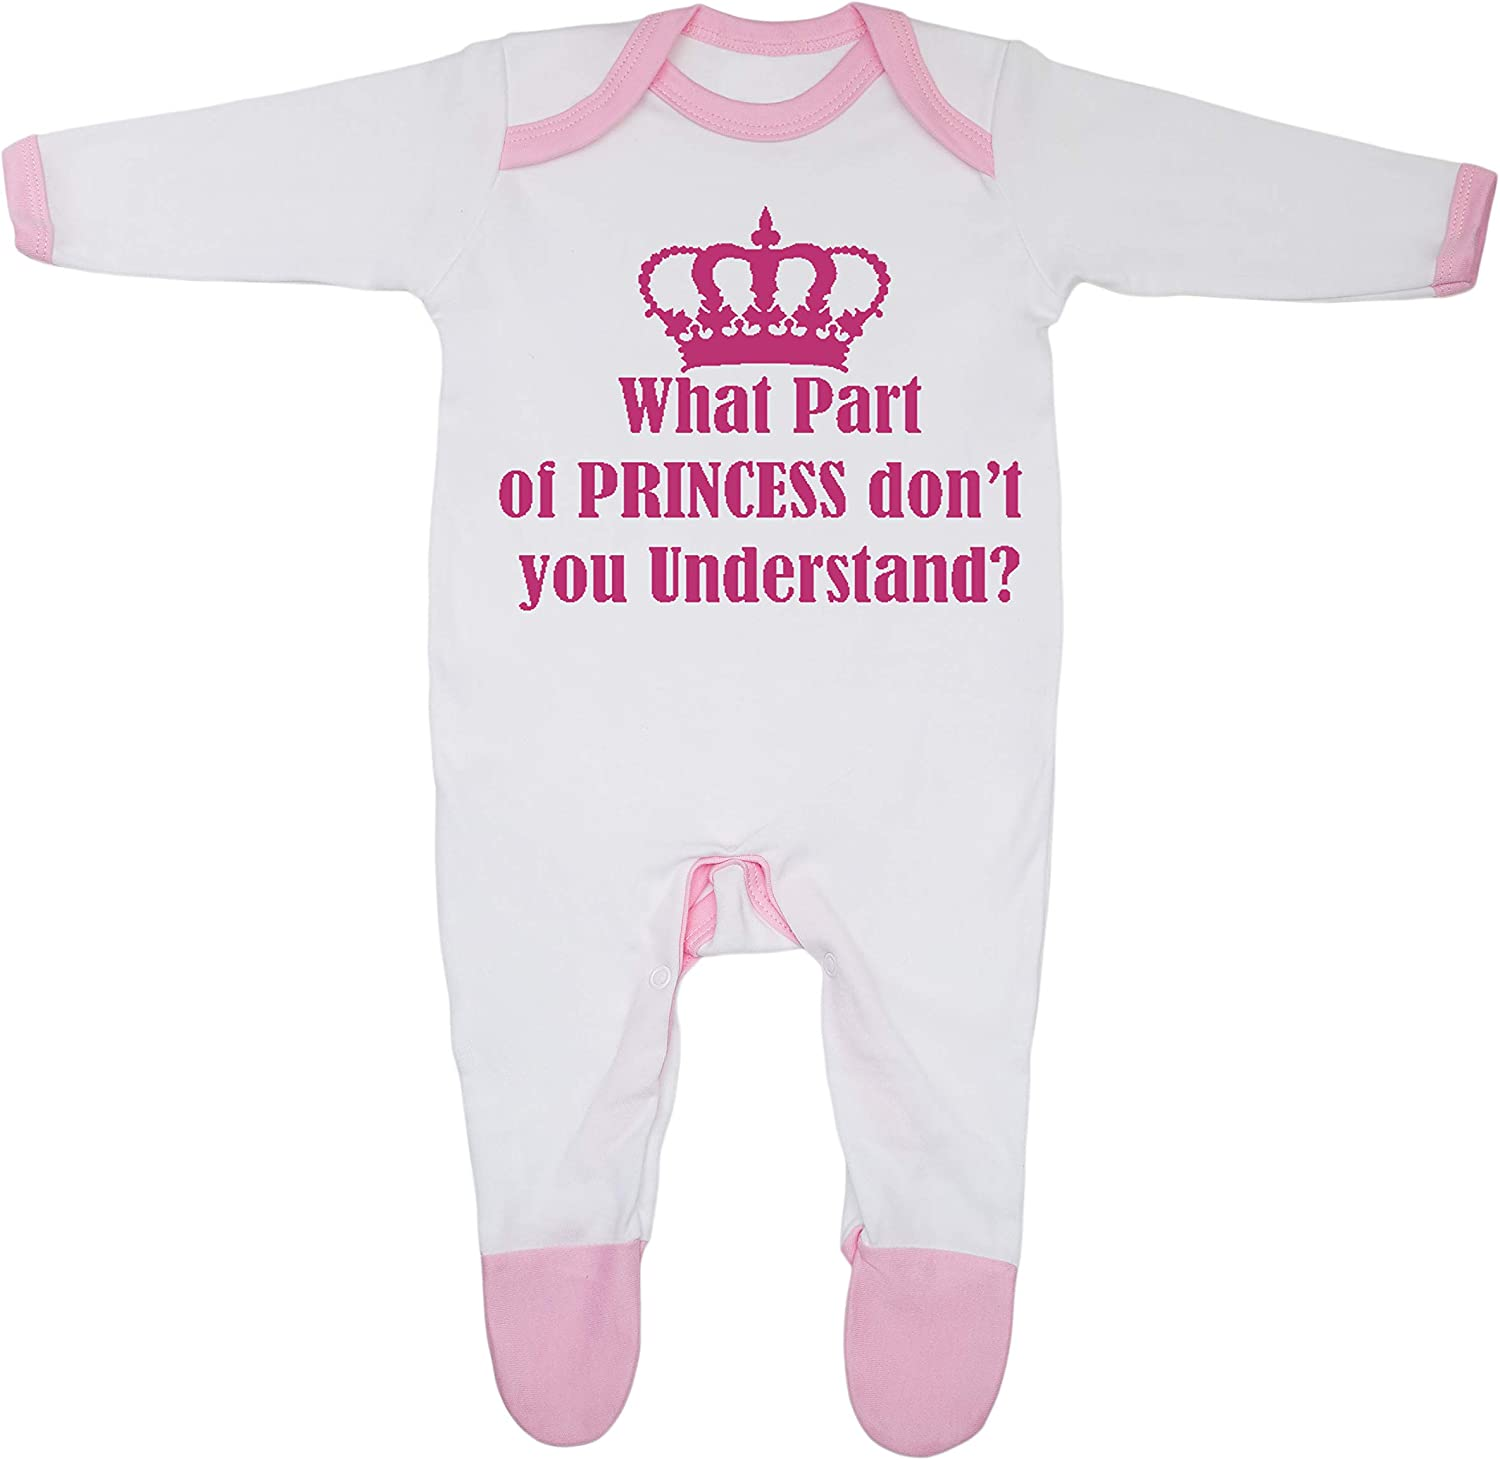 Cheekytots Baby-Strampler mit Aufschrift What Part Of Princess Dont You Understand 100/% Baumwolle hergestellt in England